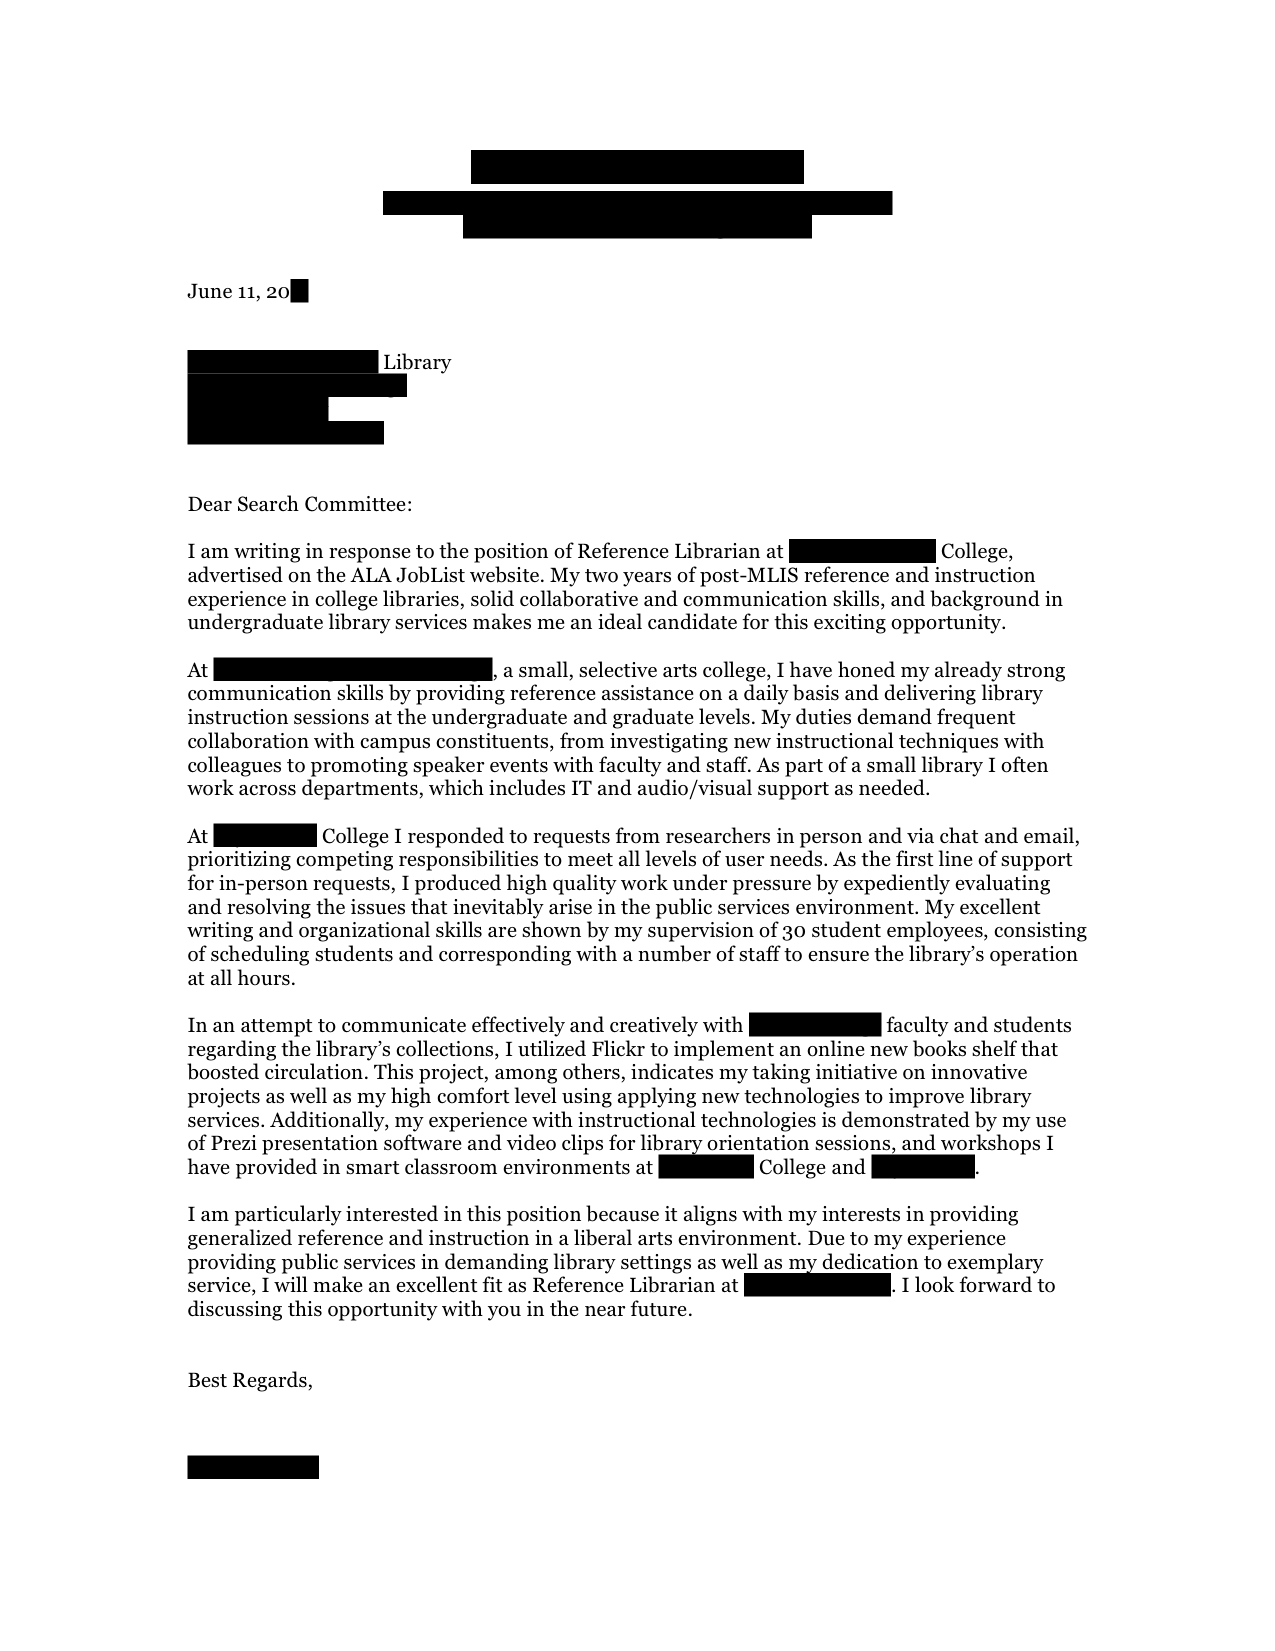 Reference Librarian Cover Letter